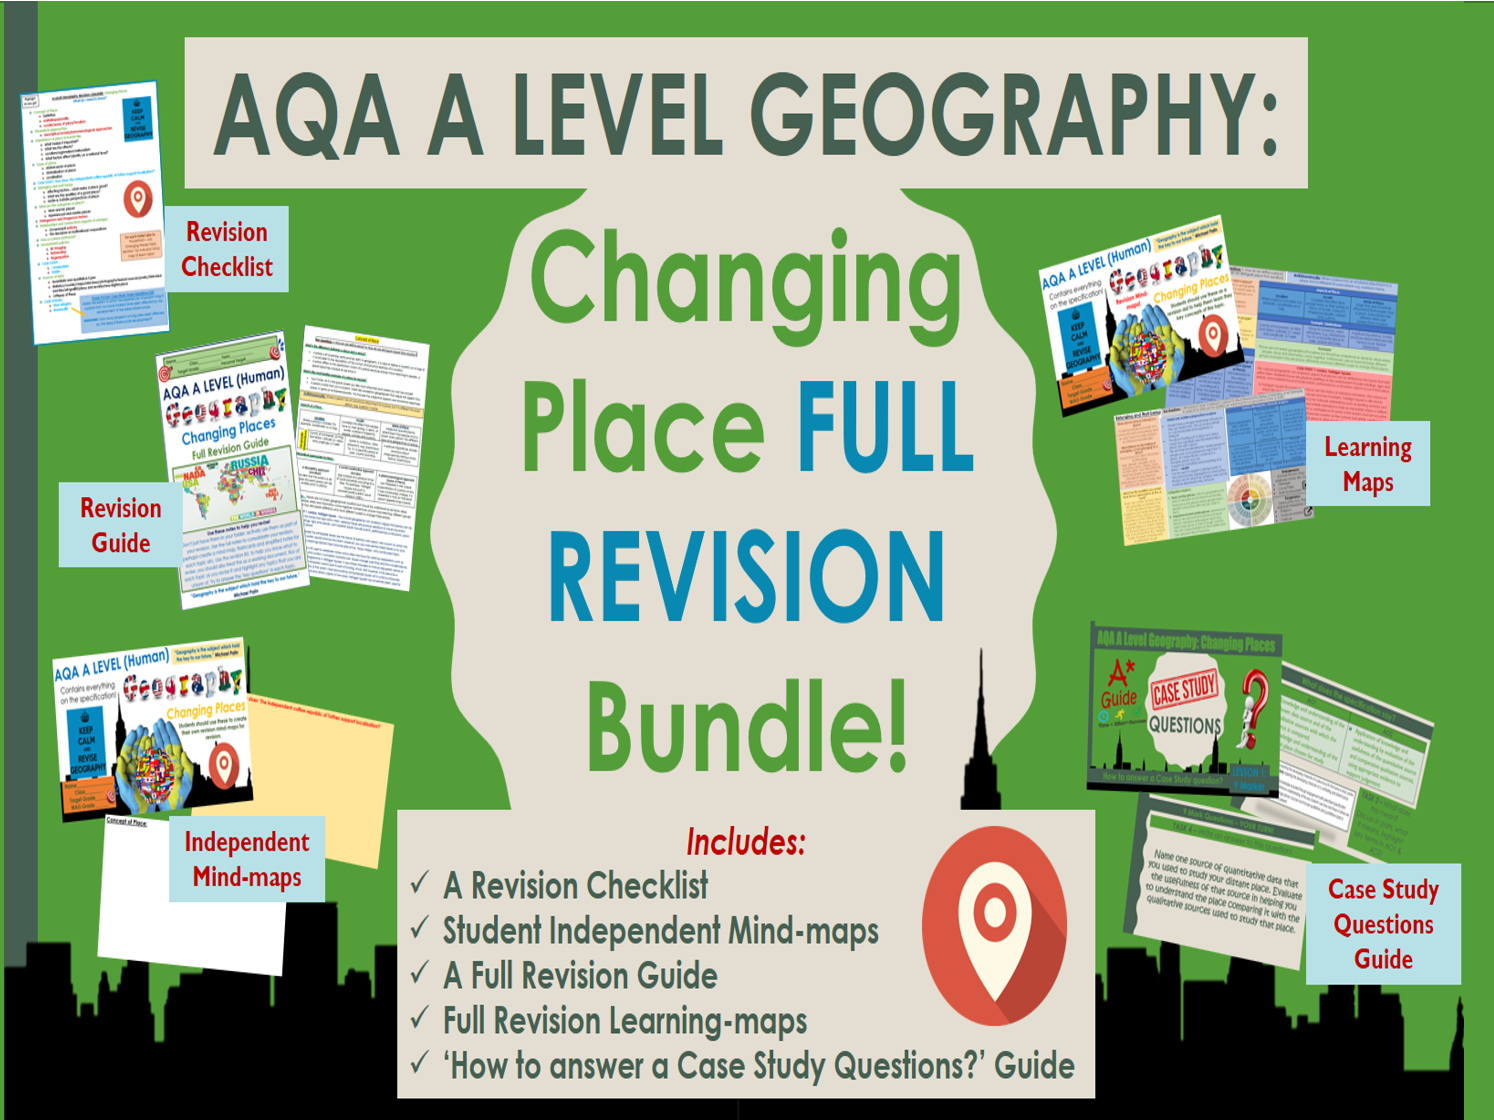 AQA A Level Geography: Changing Places Revision Bundle!